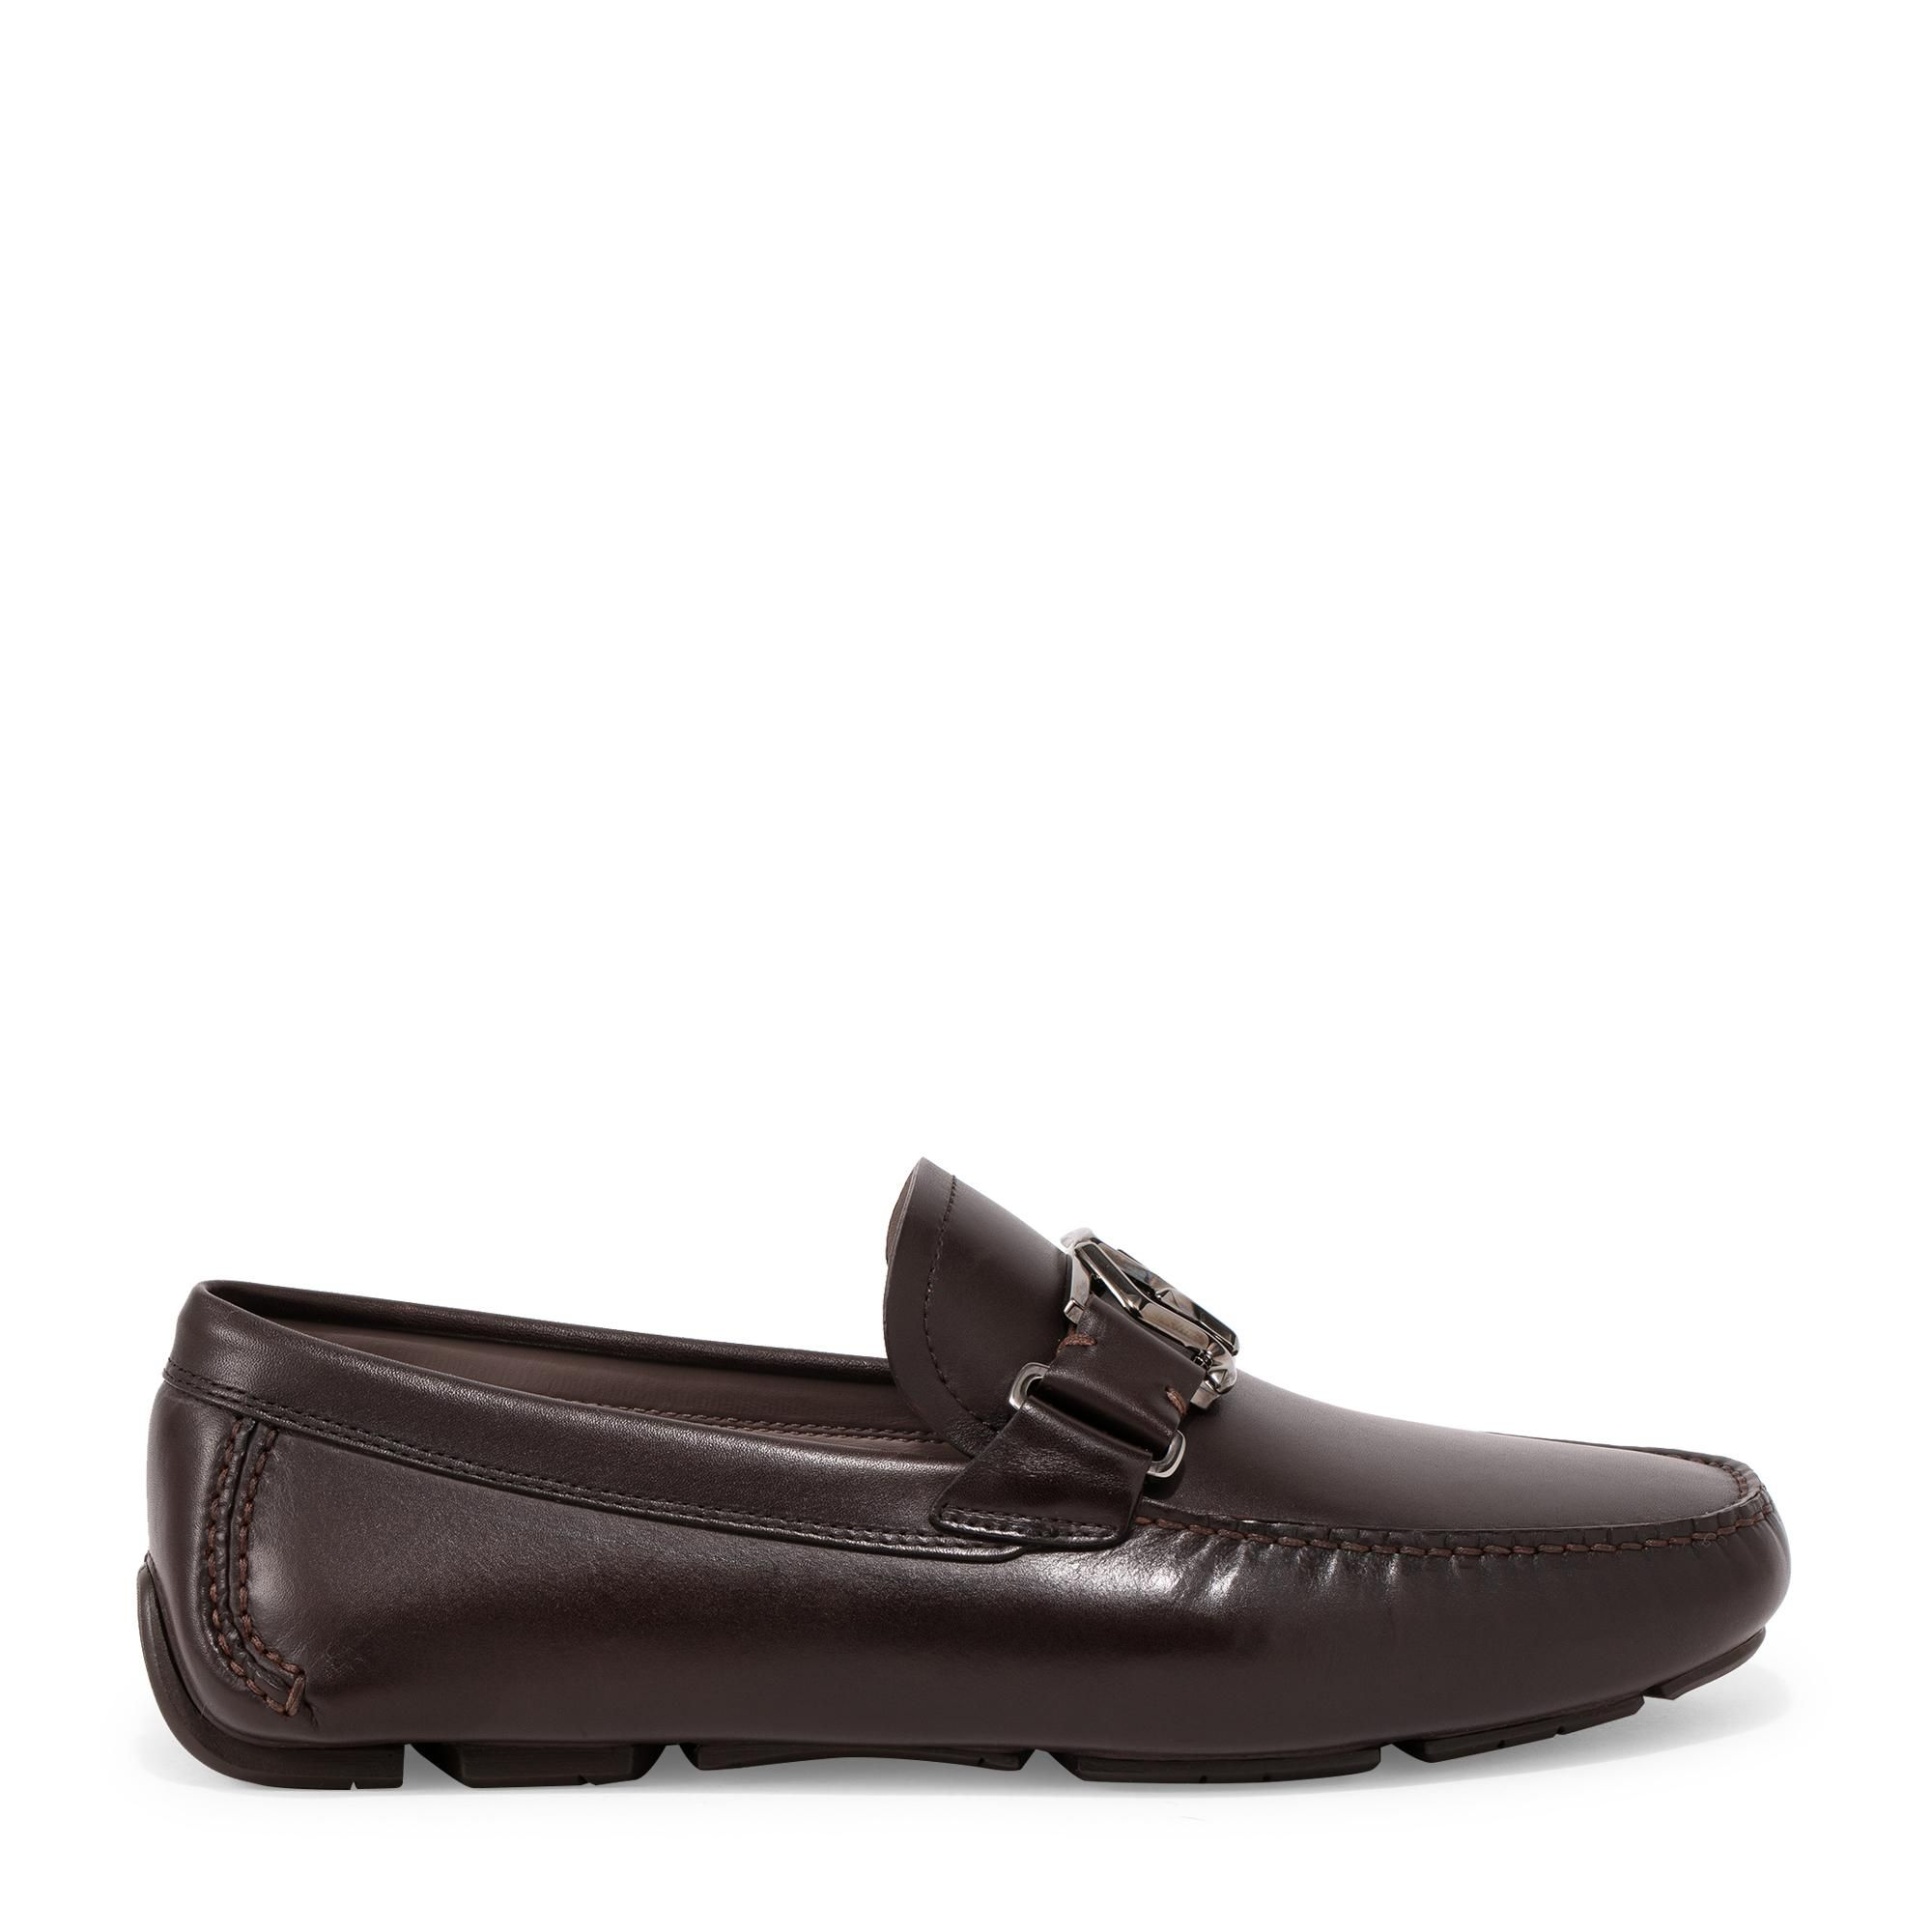 Peter loafers